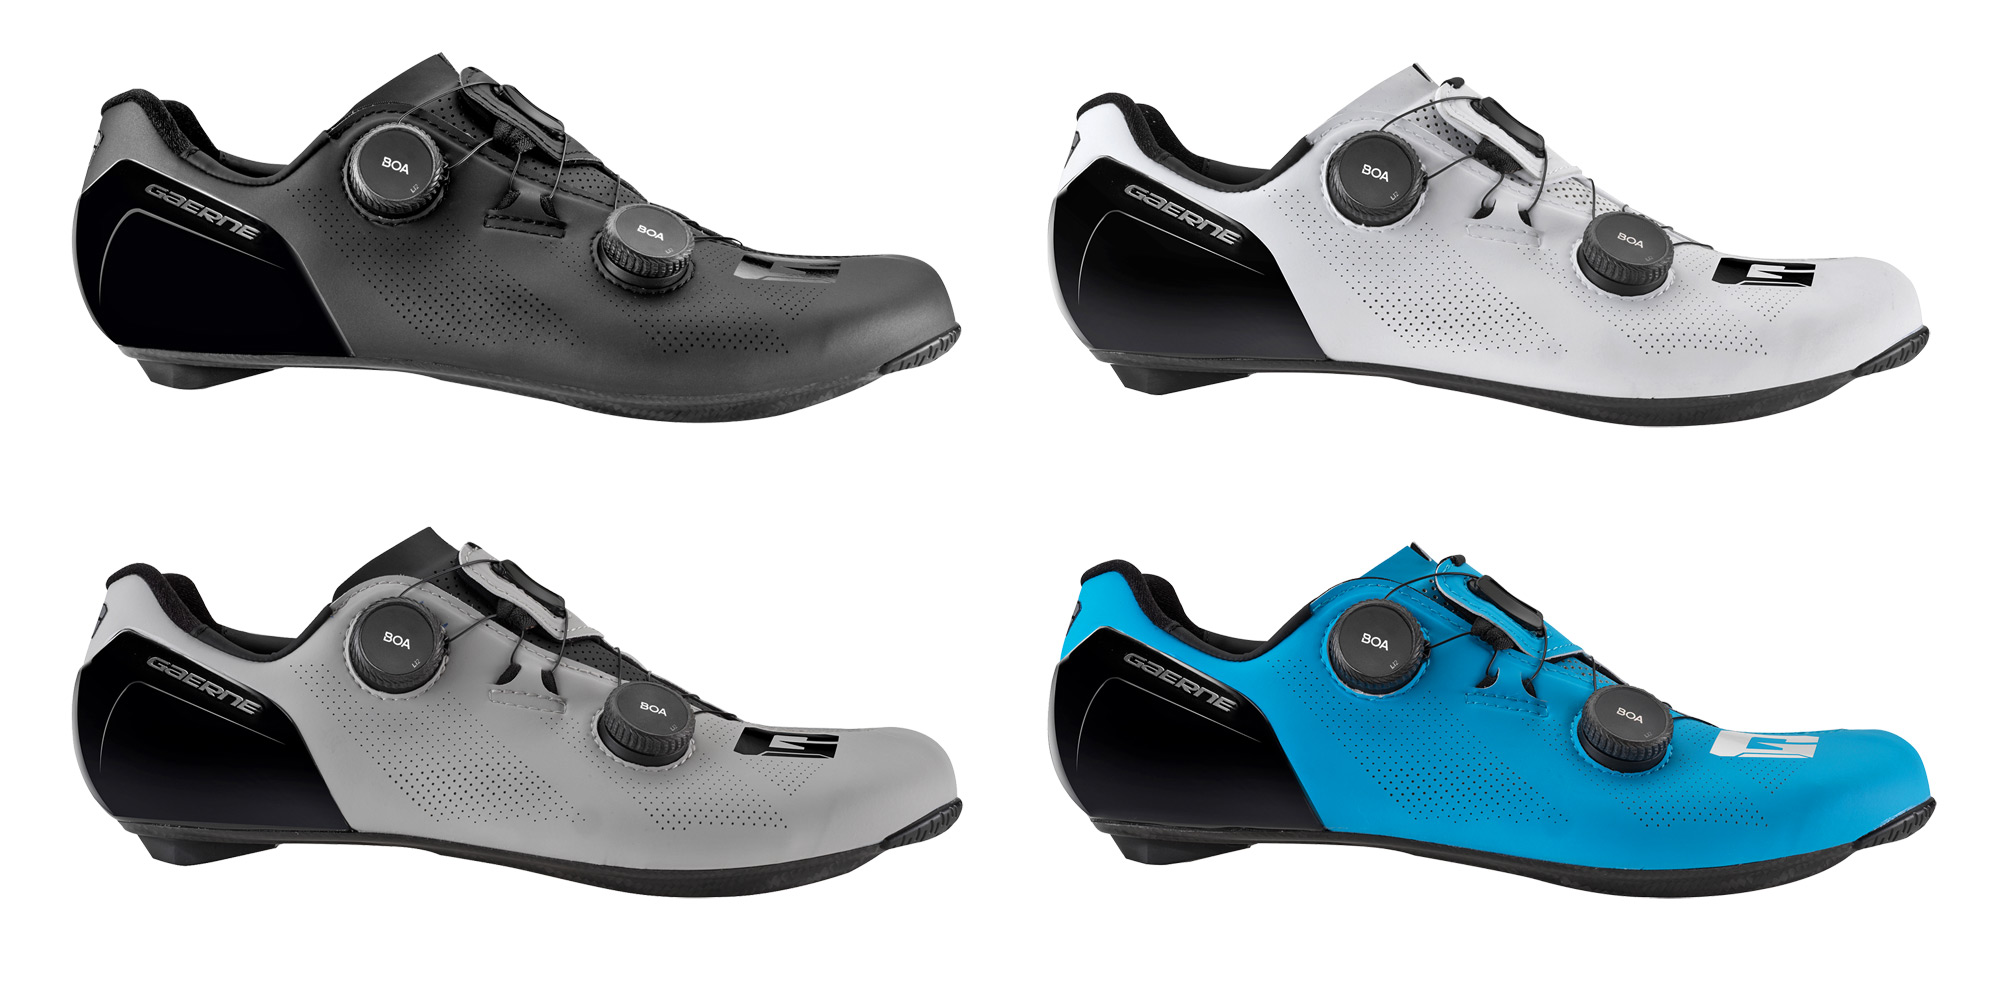 Gaerne G.STL road shoes, top-tier made-in-Italy performance carbon road race bike shoe, standard colors